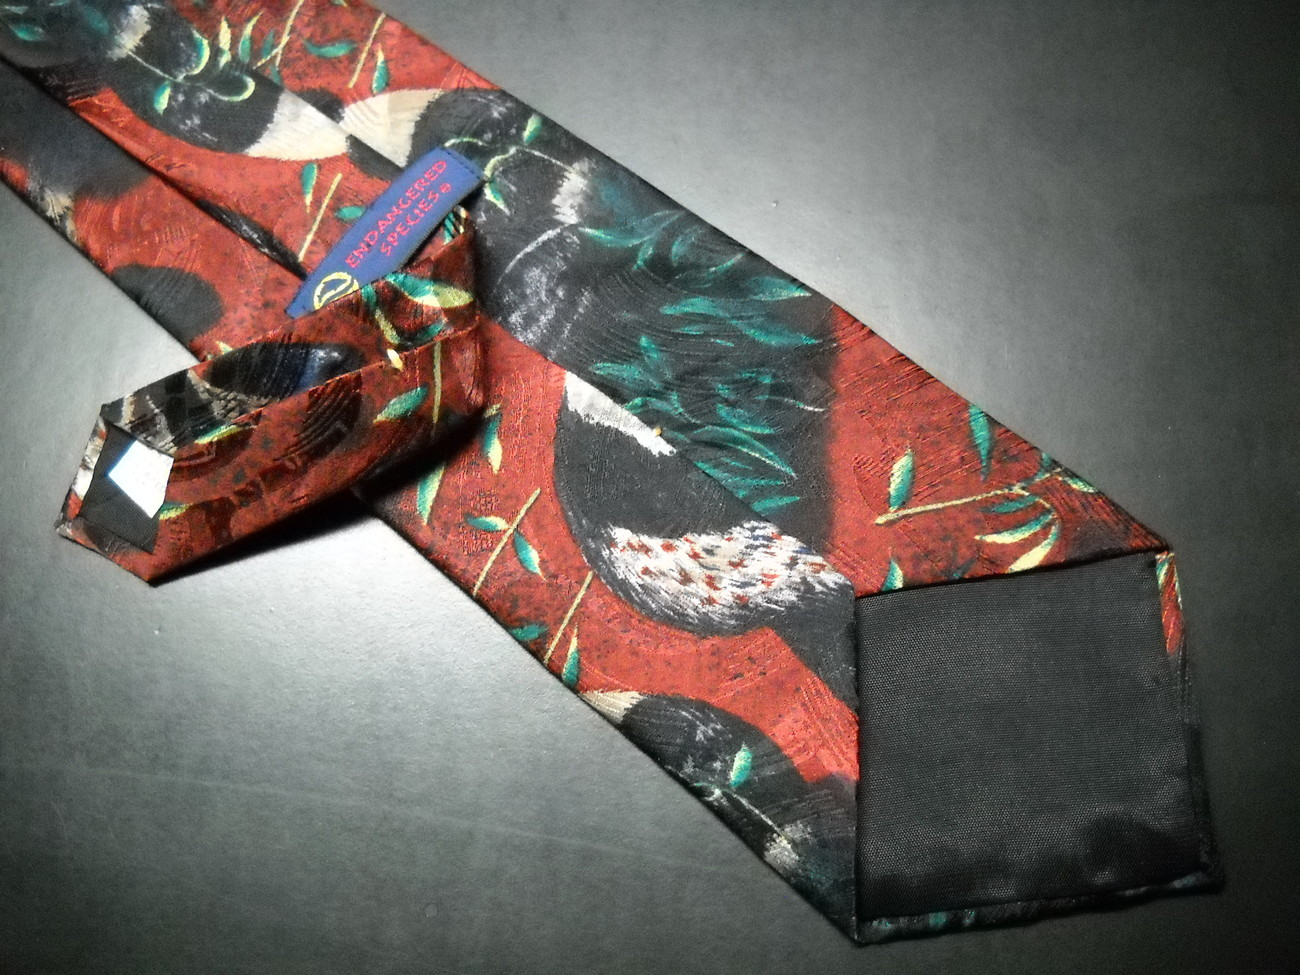 Endangered Species Neck Tie Repeating Pandas on Reds and Greens image 6